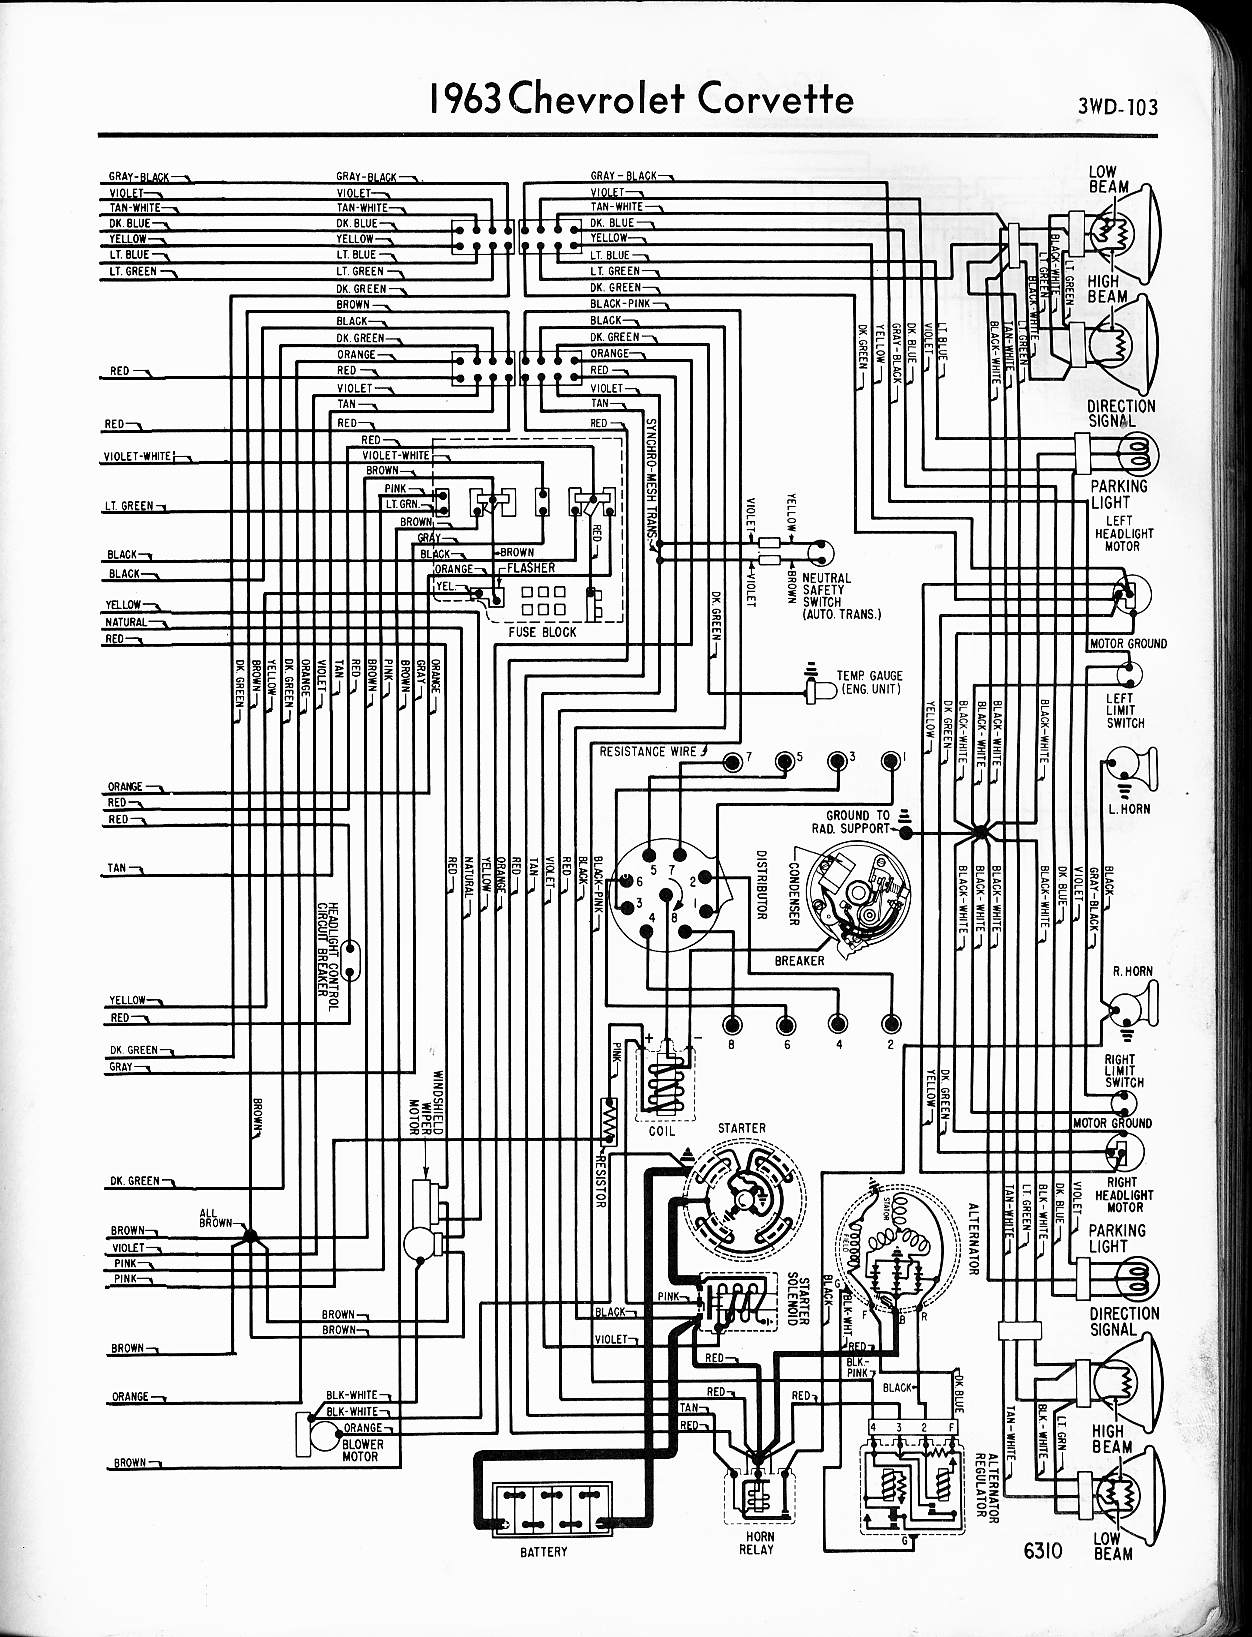 hight resolution of 63 corvette free wiring diagrams auto simple wiring diagrams rh 22 studio011 de 1964 corvette gauge